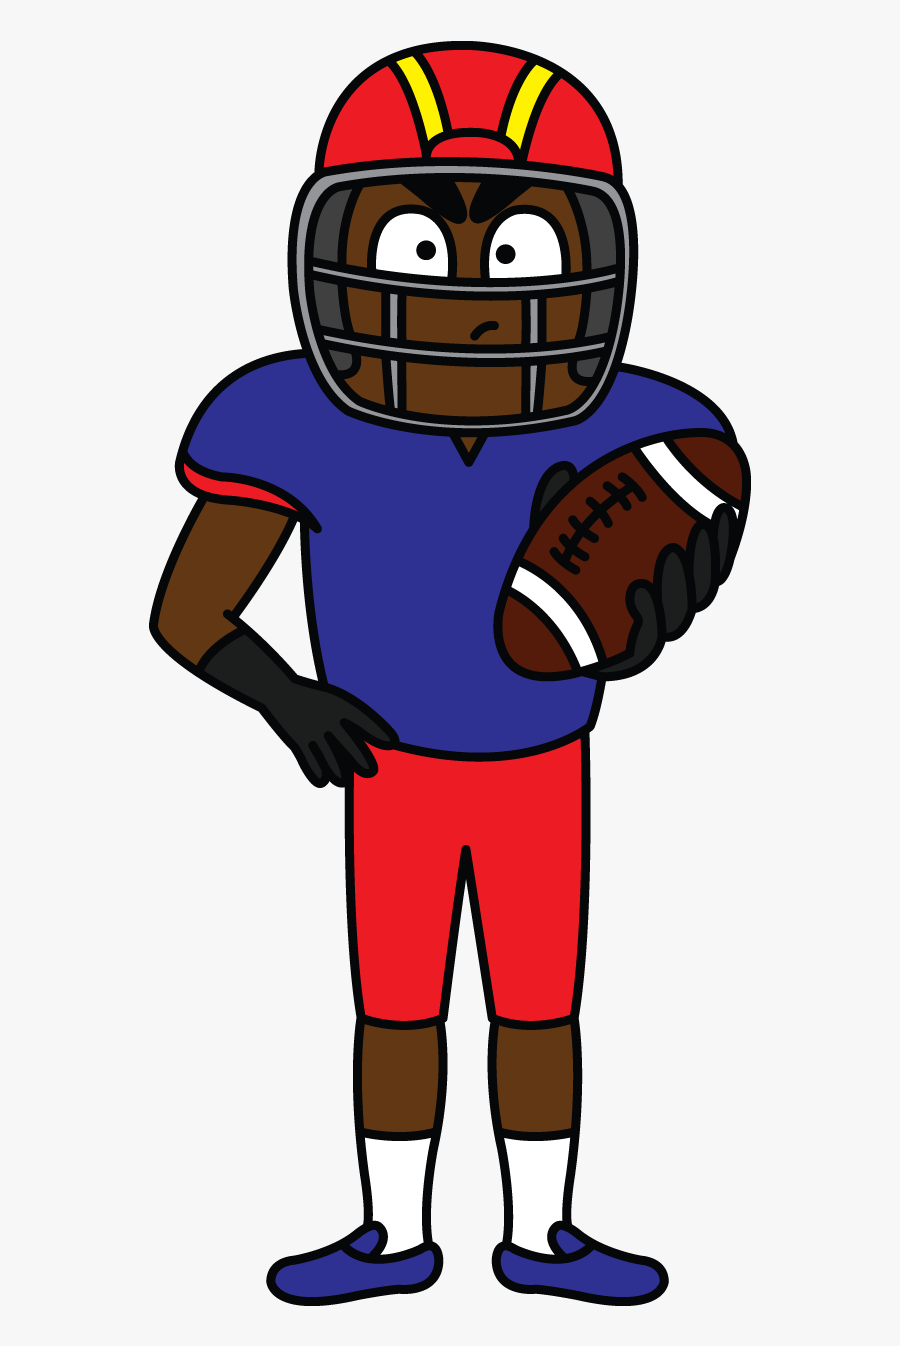 Drawissimo Kids How To Draw - Easy Drawing Football Players, Transparent Clipart